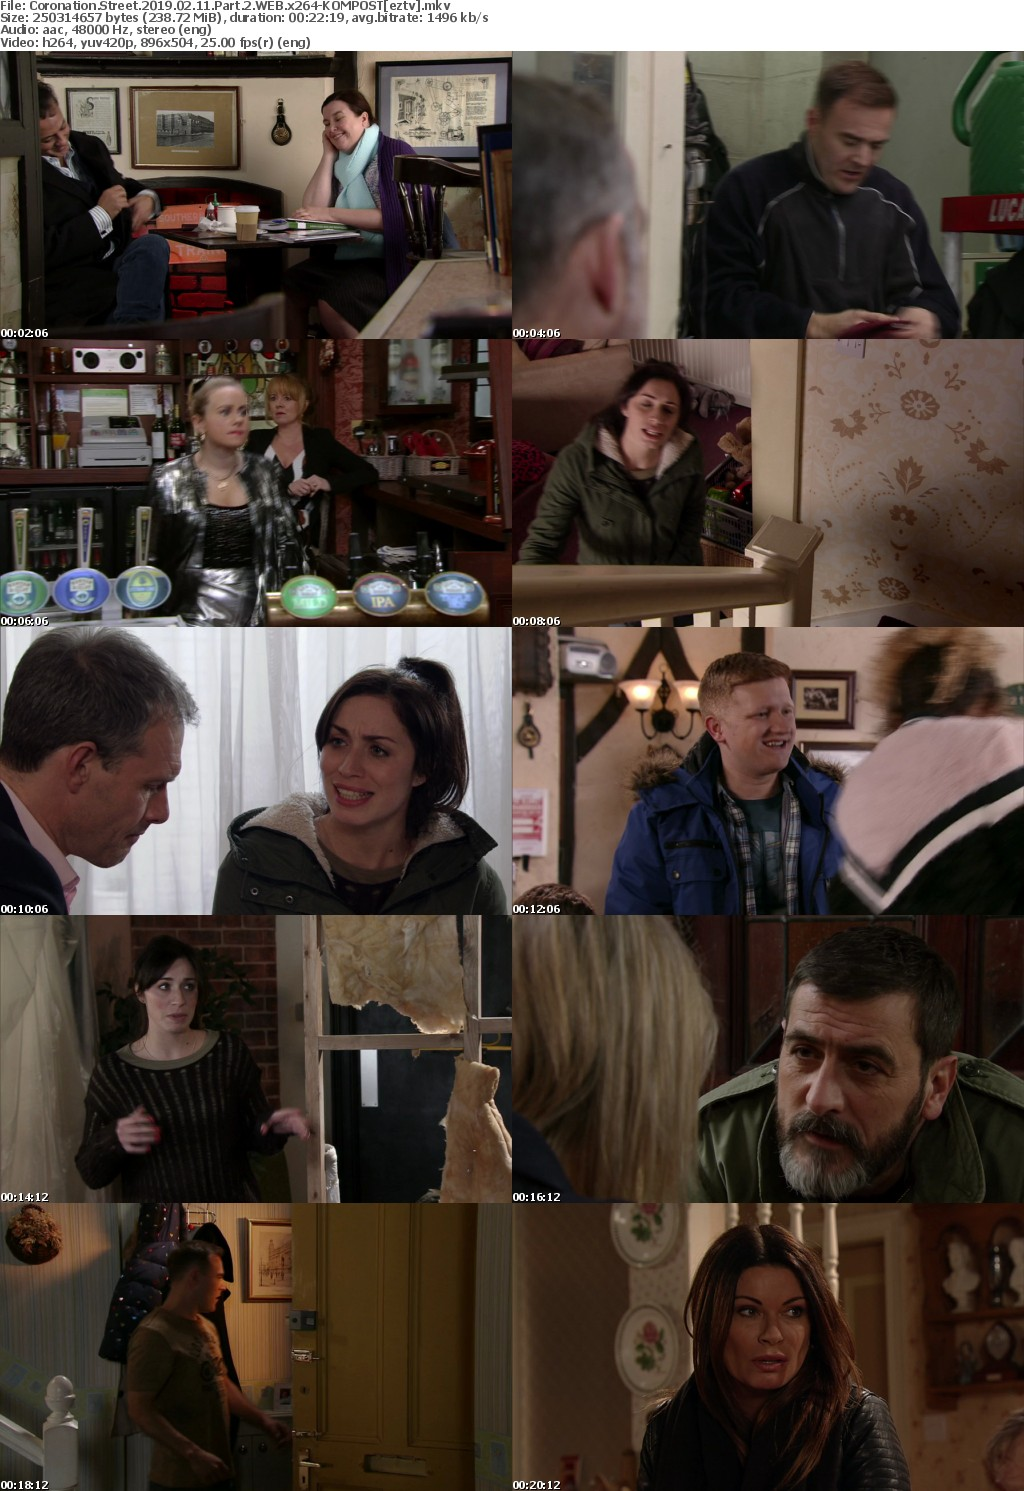 Coronation Street 2019 02 11 Part 2 WEB x264-KOMPOST